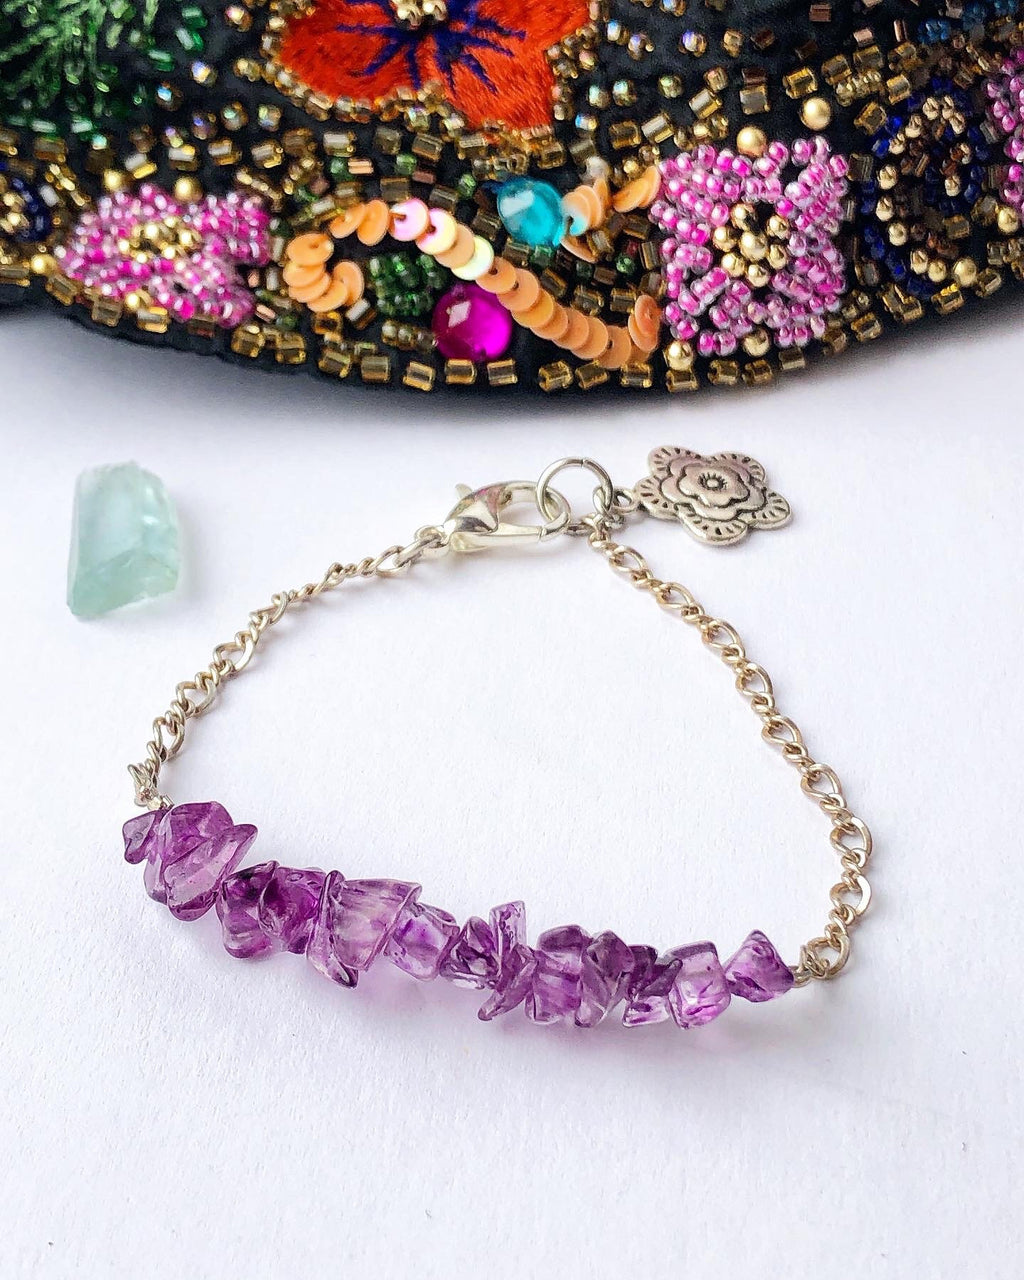 Amethyst Chain Bracelet Dainty Sterling Silver / Vintage Recycled Gemstones and Chain / Flower Charm / Vintage Amethyst Jewelry Birthstone